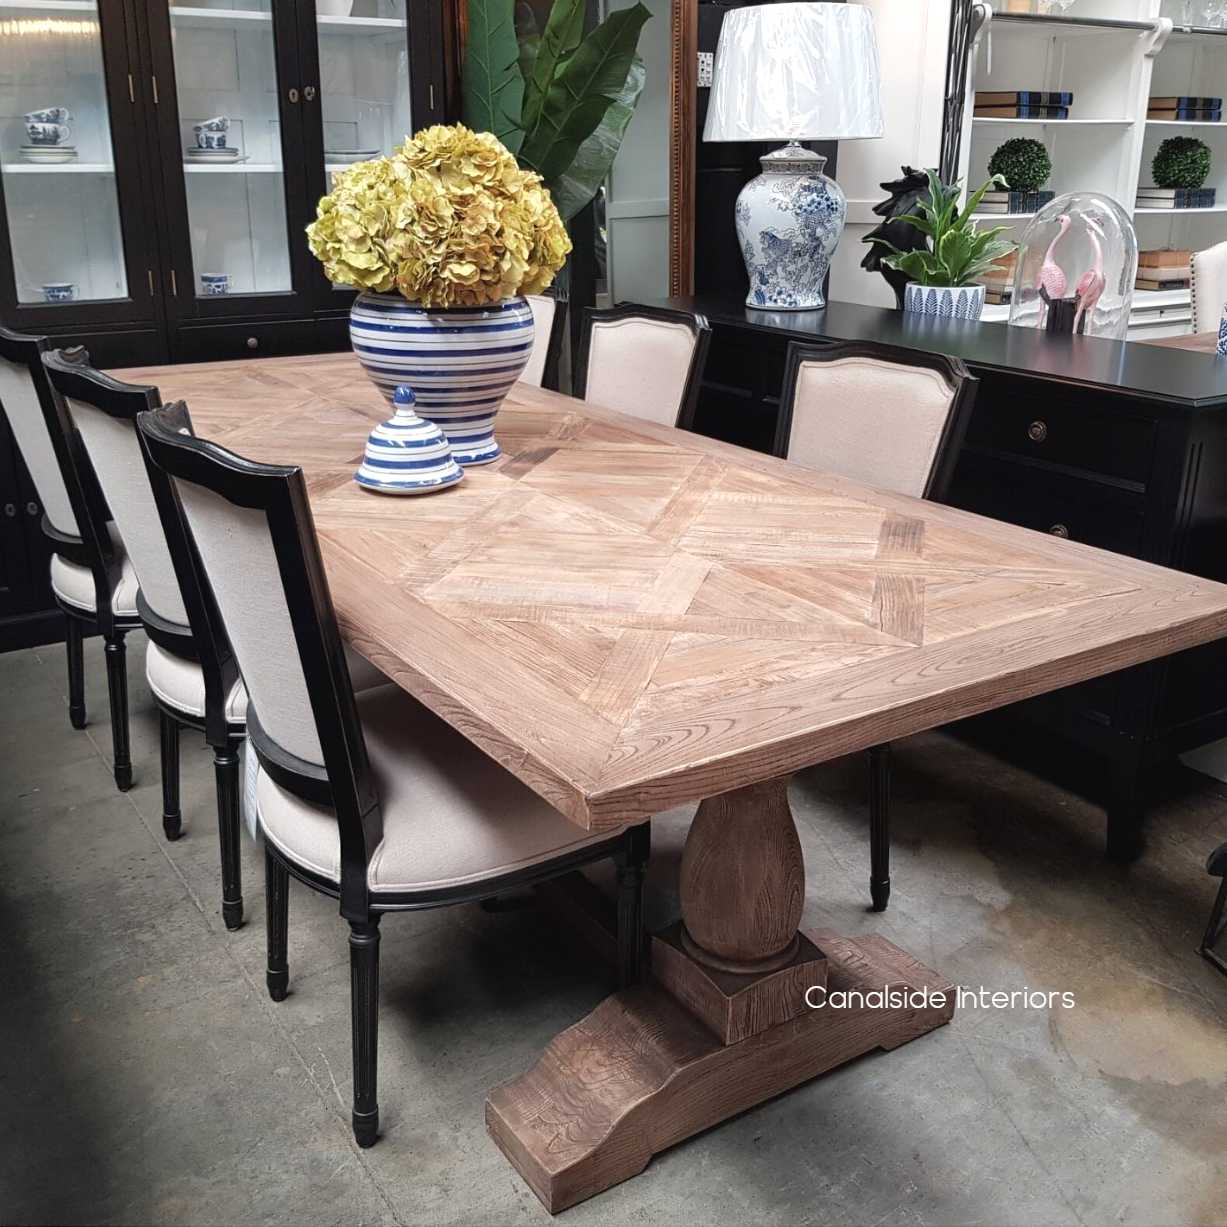 Boathouse Rustic Parquetry Dining Table  TABLES, HAMPTONS Style, PLANTATION Style, TABLES Dining Tables